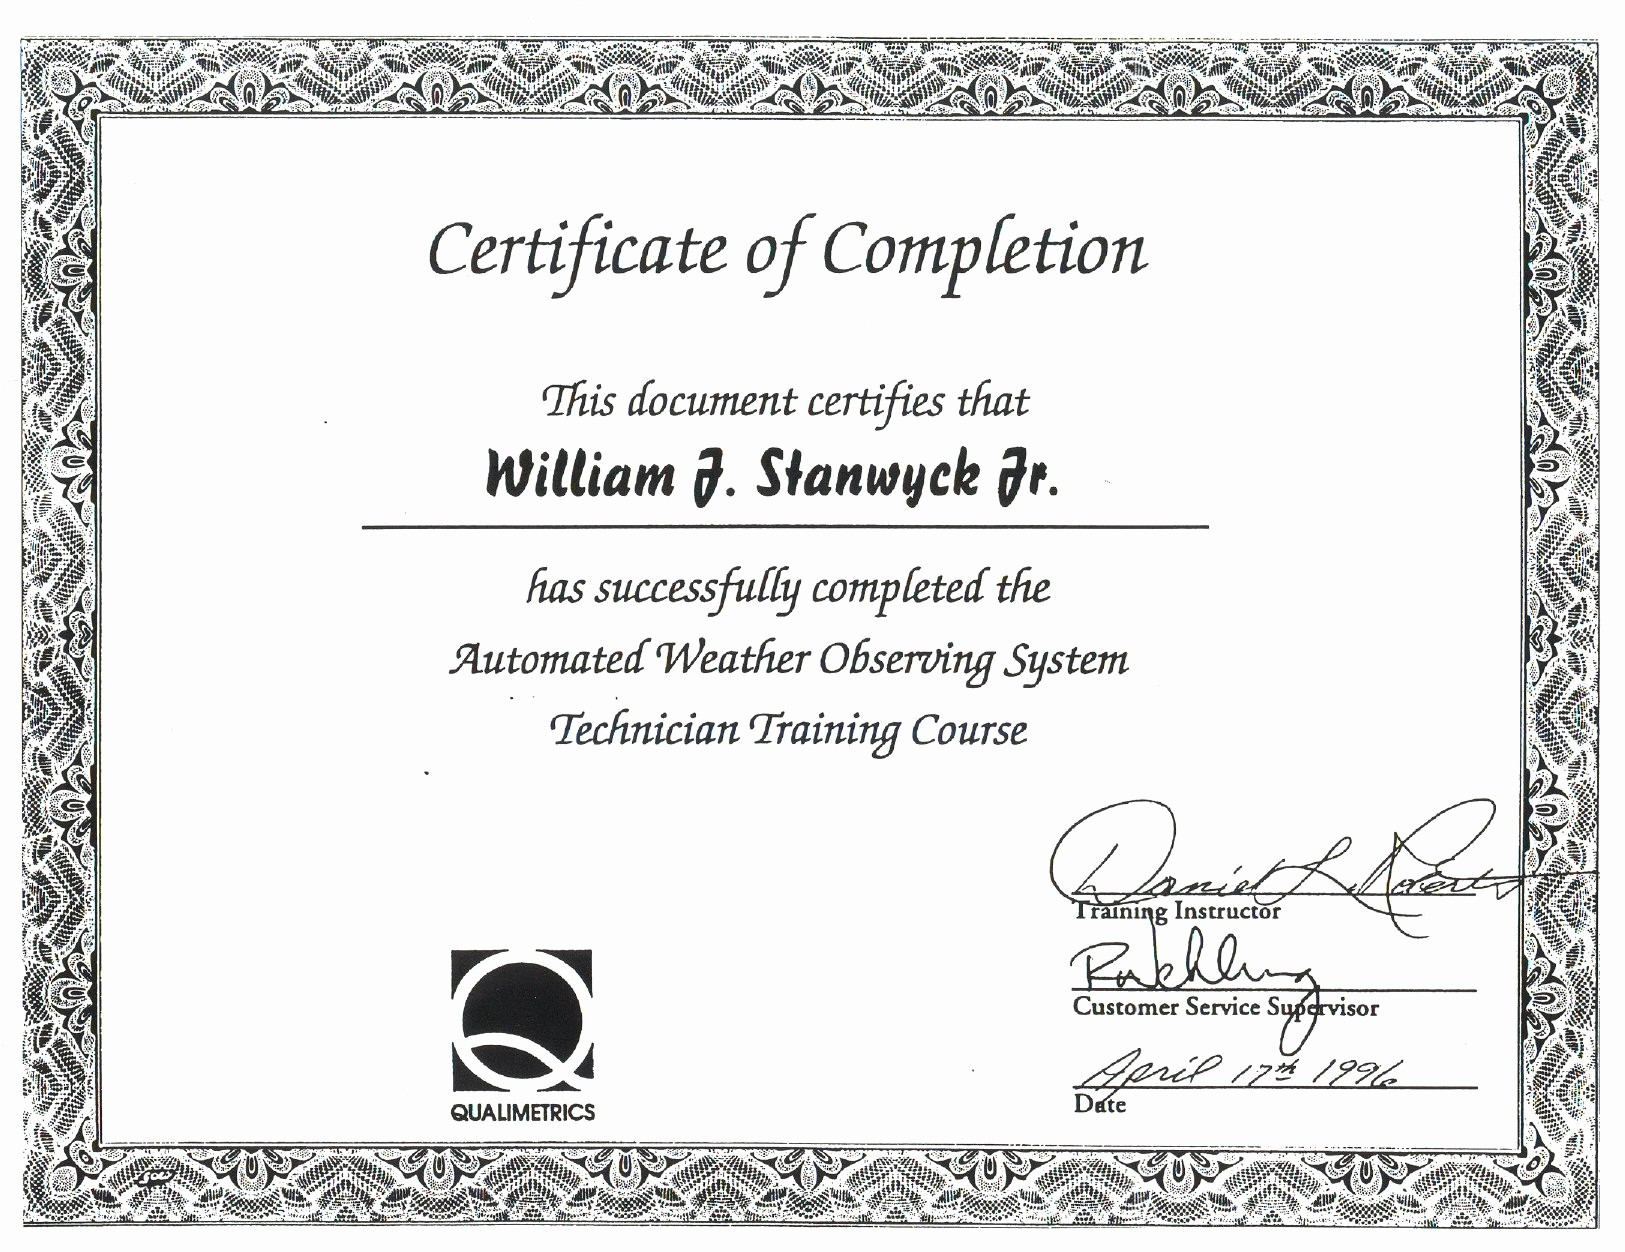 Certificate Of Course Completion Template Beautiful 13 Certificate Of Pletion Templates Excel Pdf formats